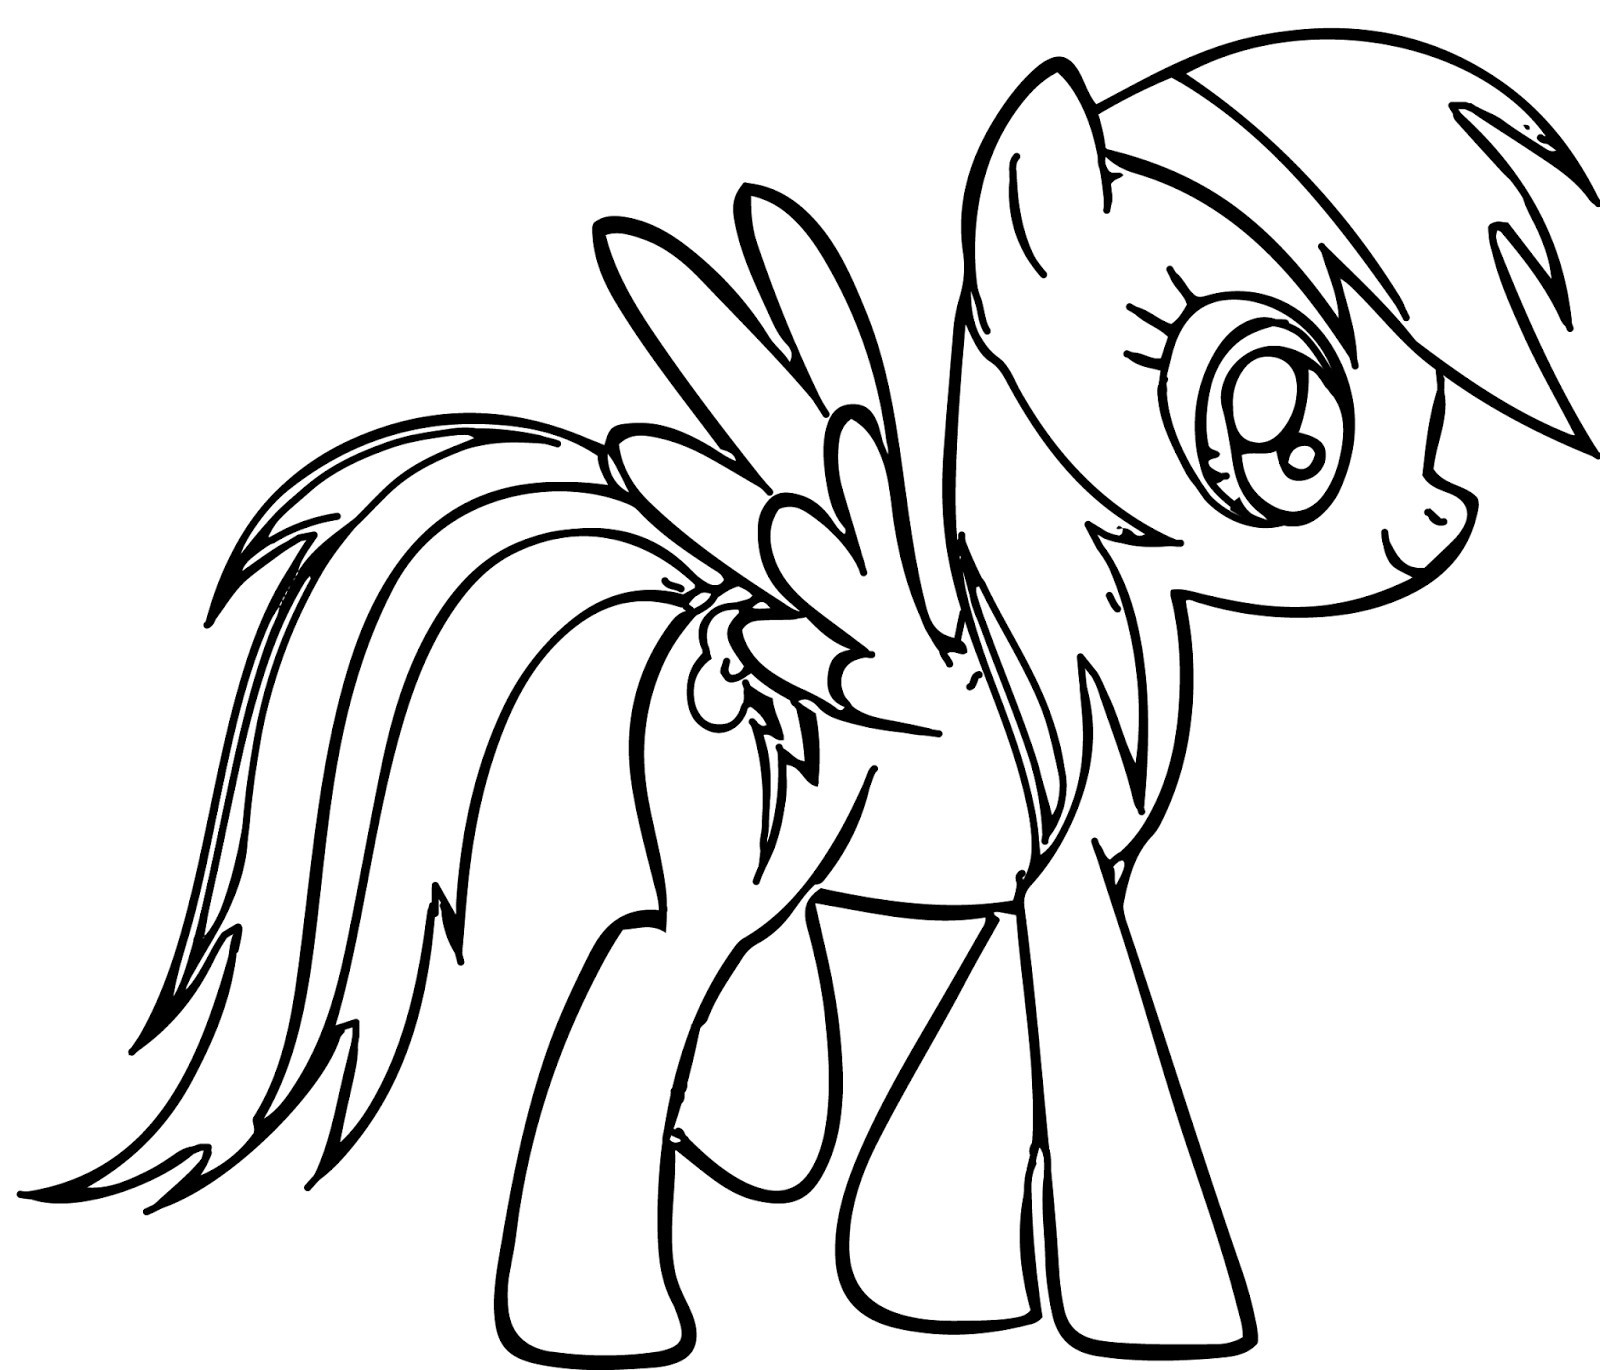 my little pony coloring pages rainbow dash my littlr pony rainbow dash coloring pages coloring home rainbow pages coloring little my pony dash